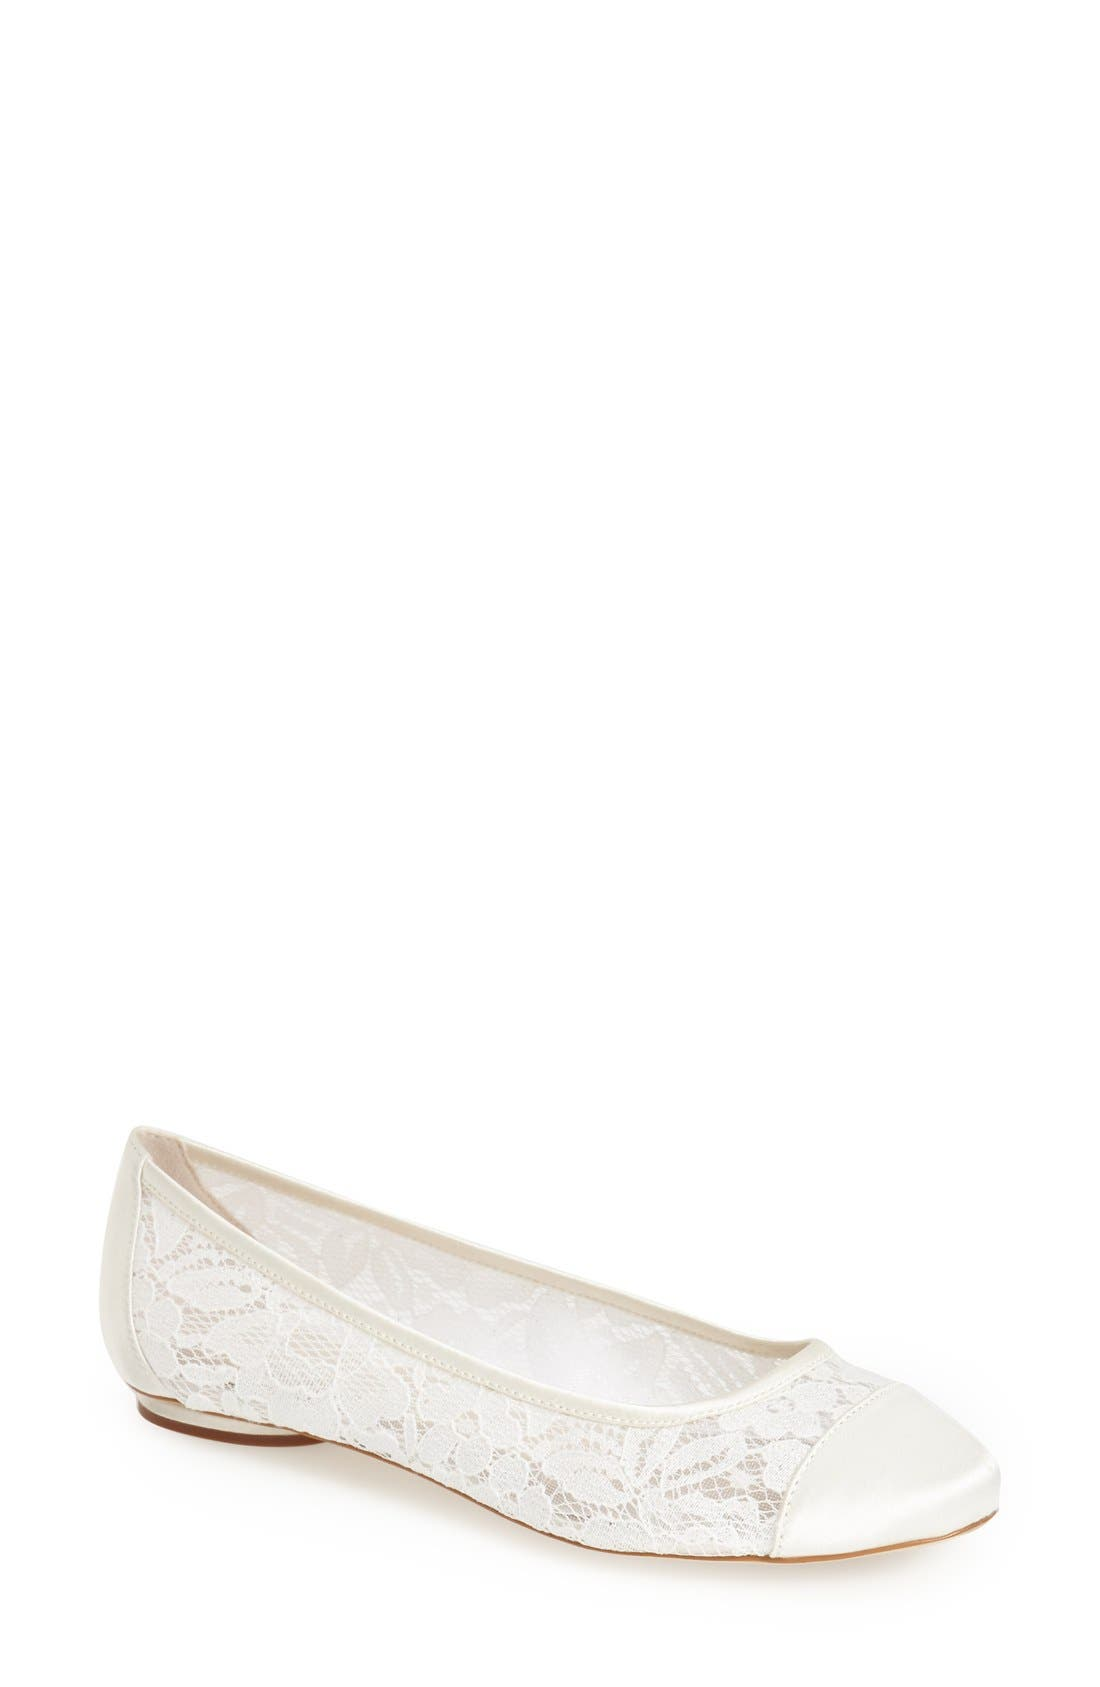 'Sweetie' Lace Cap Toe Ballet Flat,                         Main,                         color, IVORY LACE/ MESH